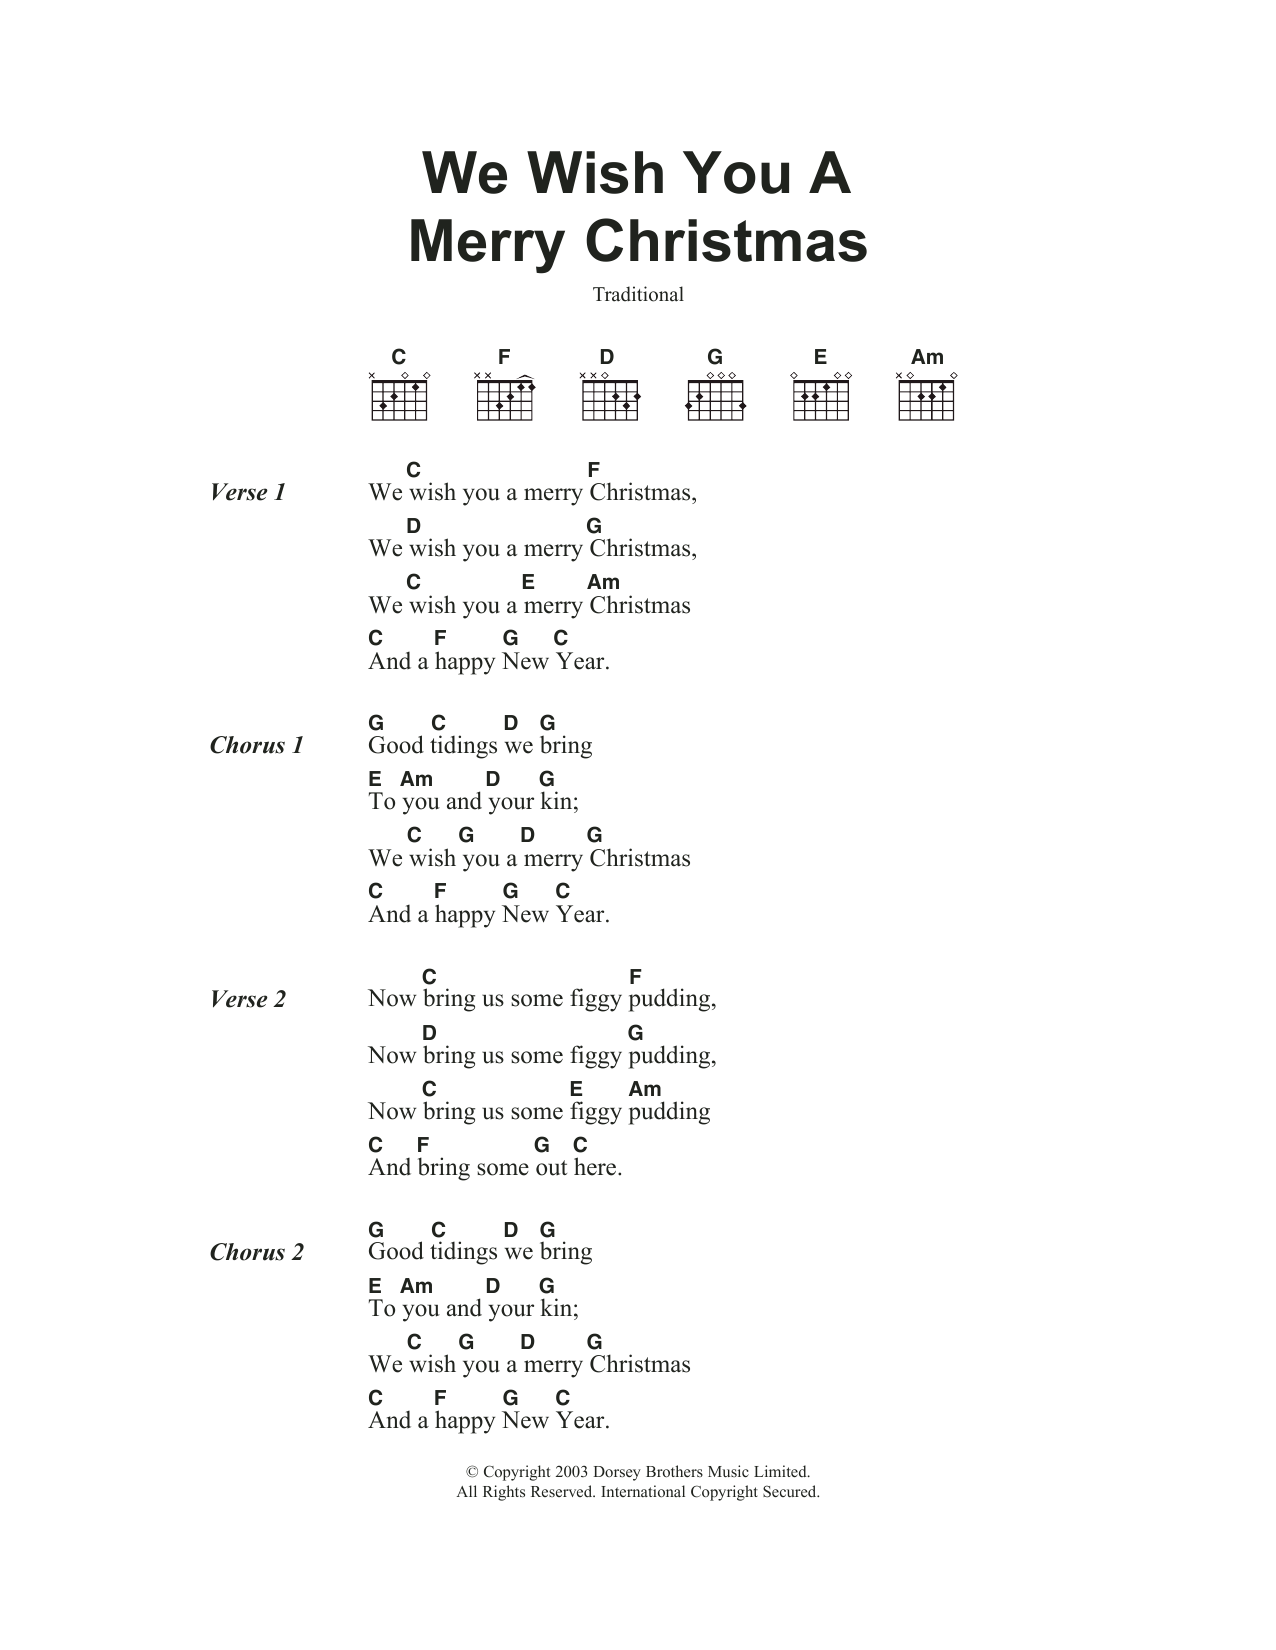 We Wish You A Merry Christmas by Traditional Carol - Guitar Chords ...